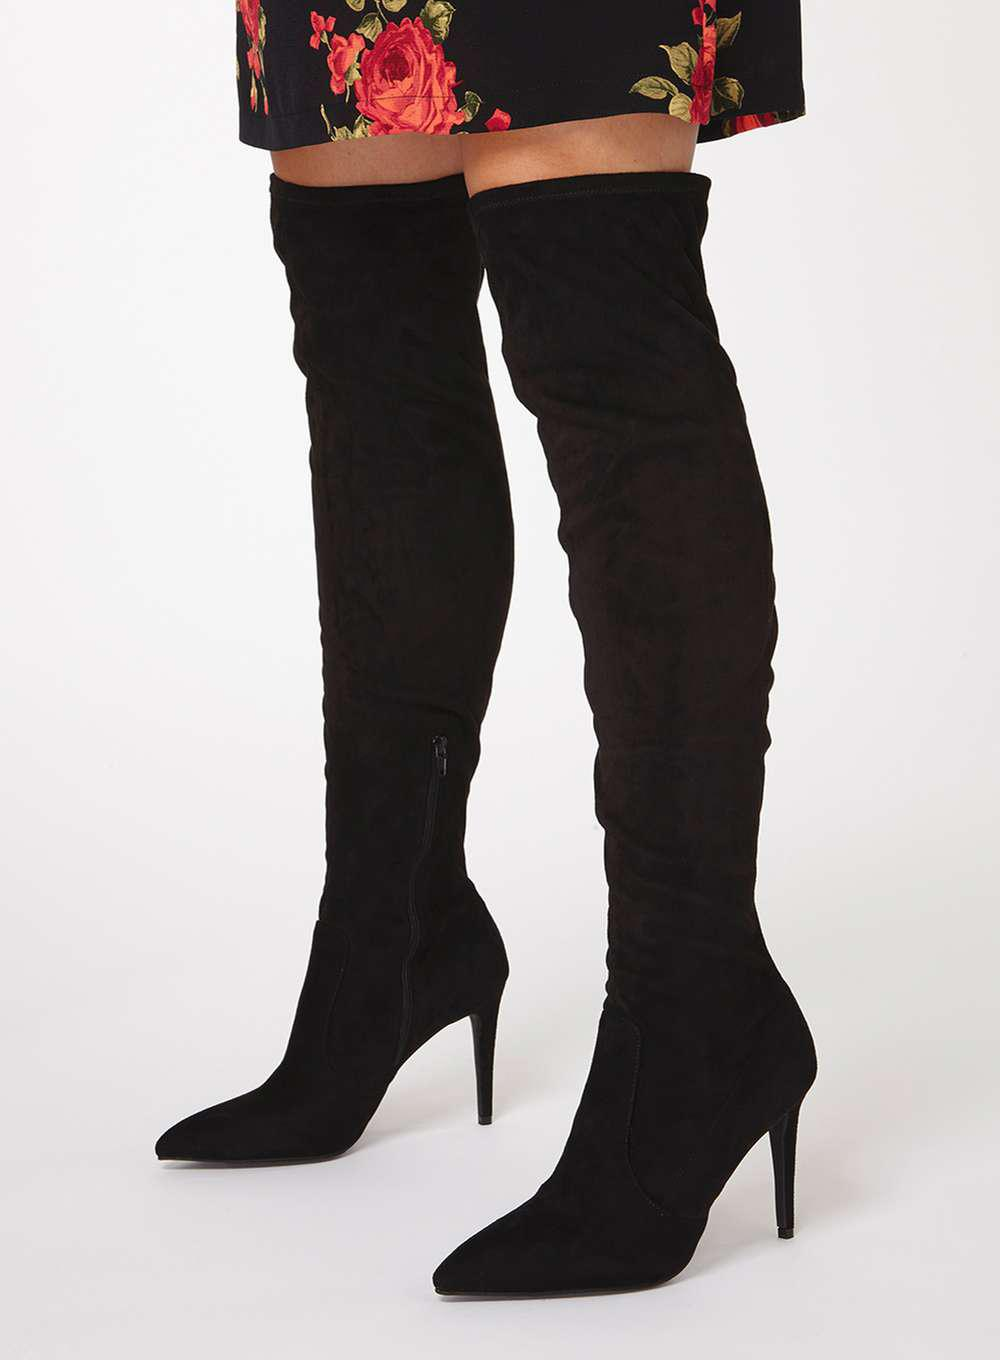 Dorothy Perkins Black 'kimberly' Pointed Knee High Boots